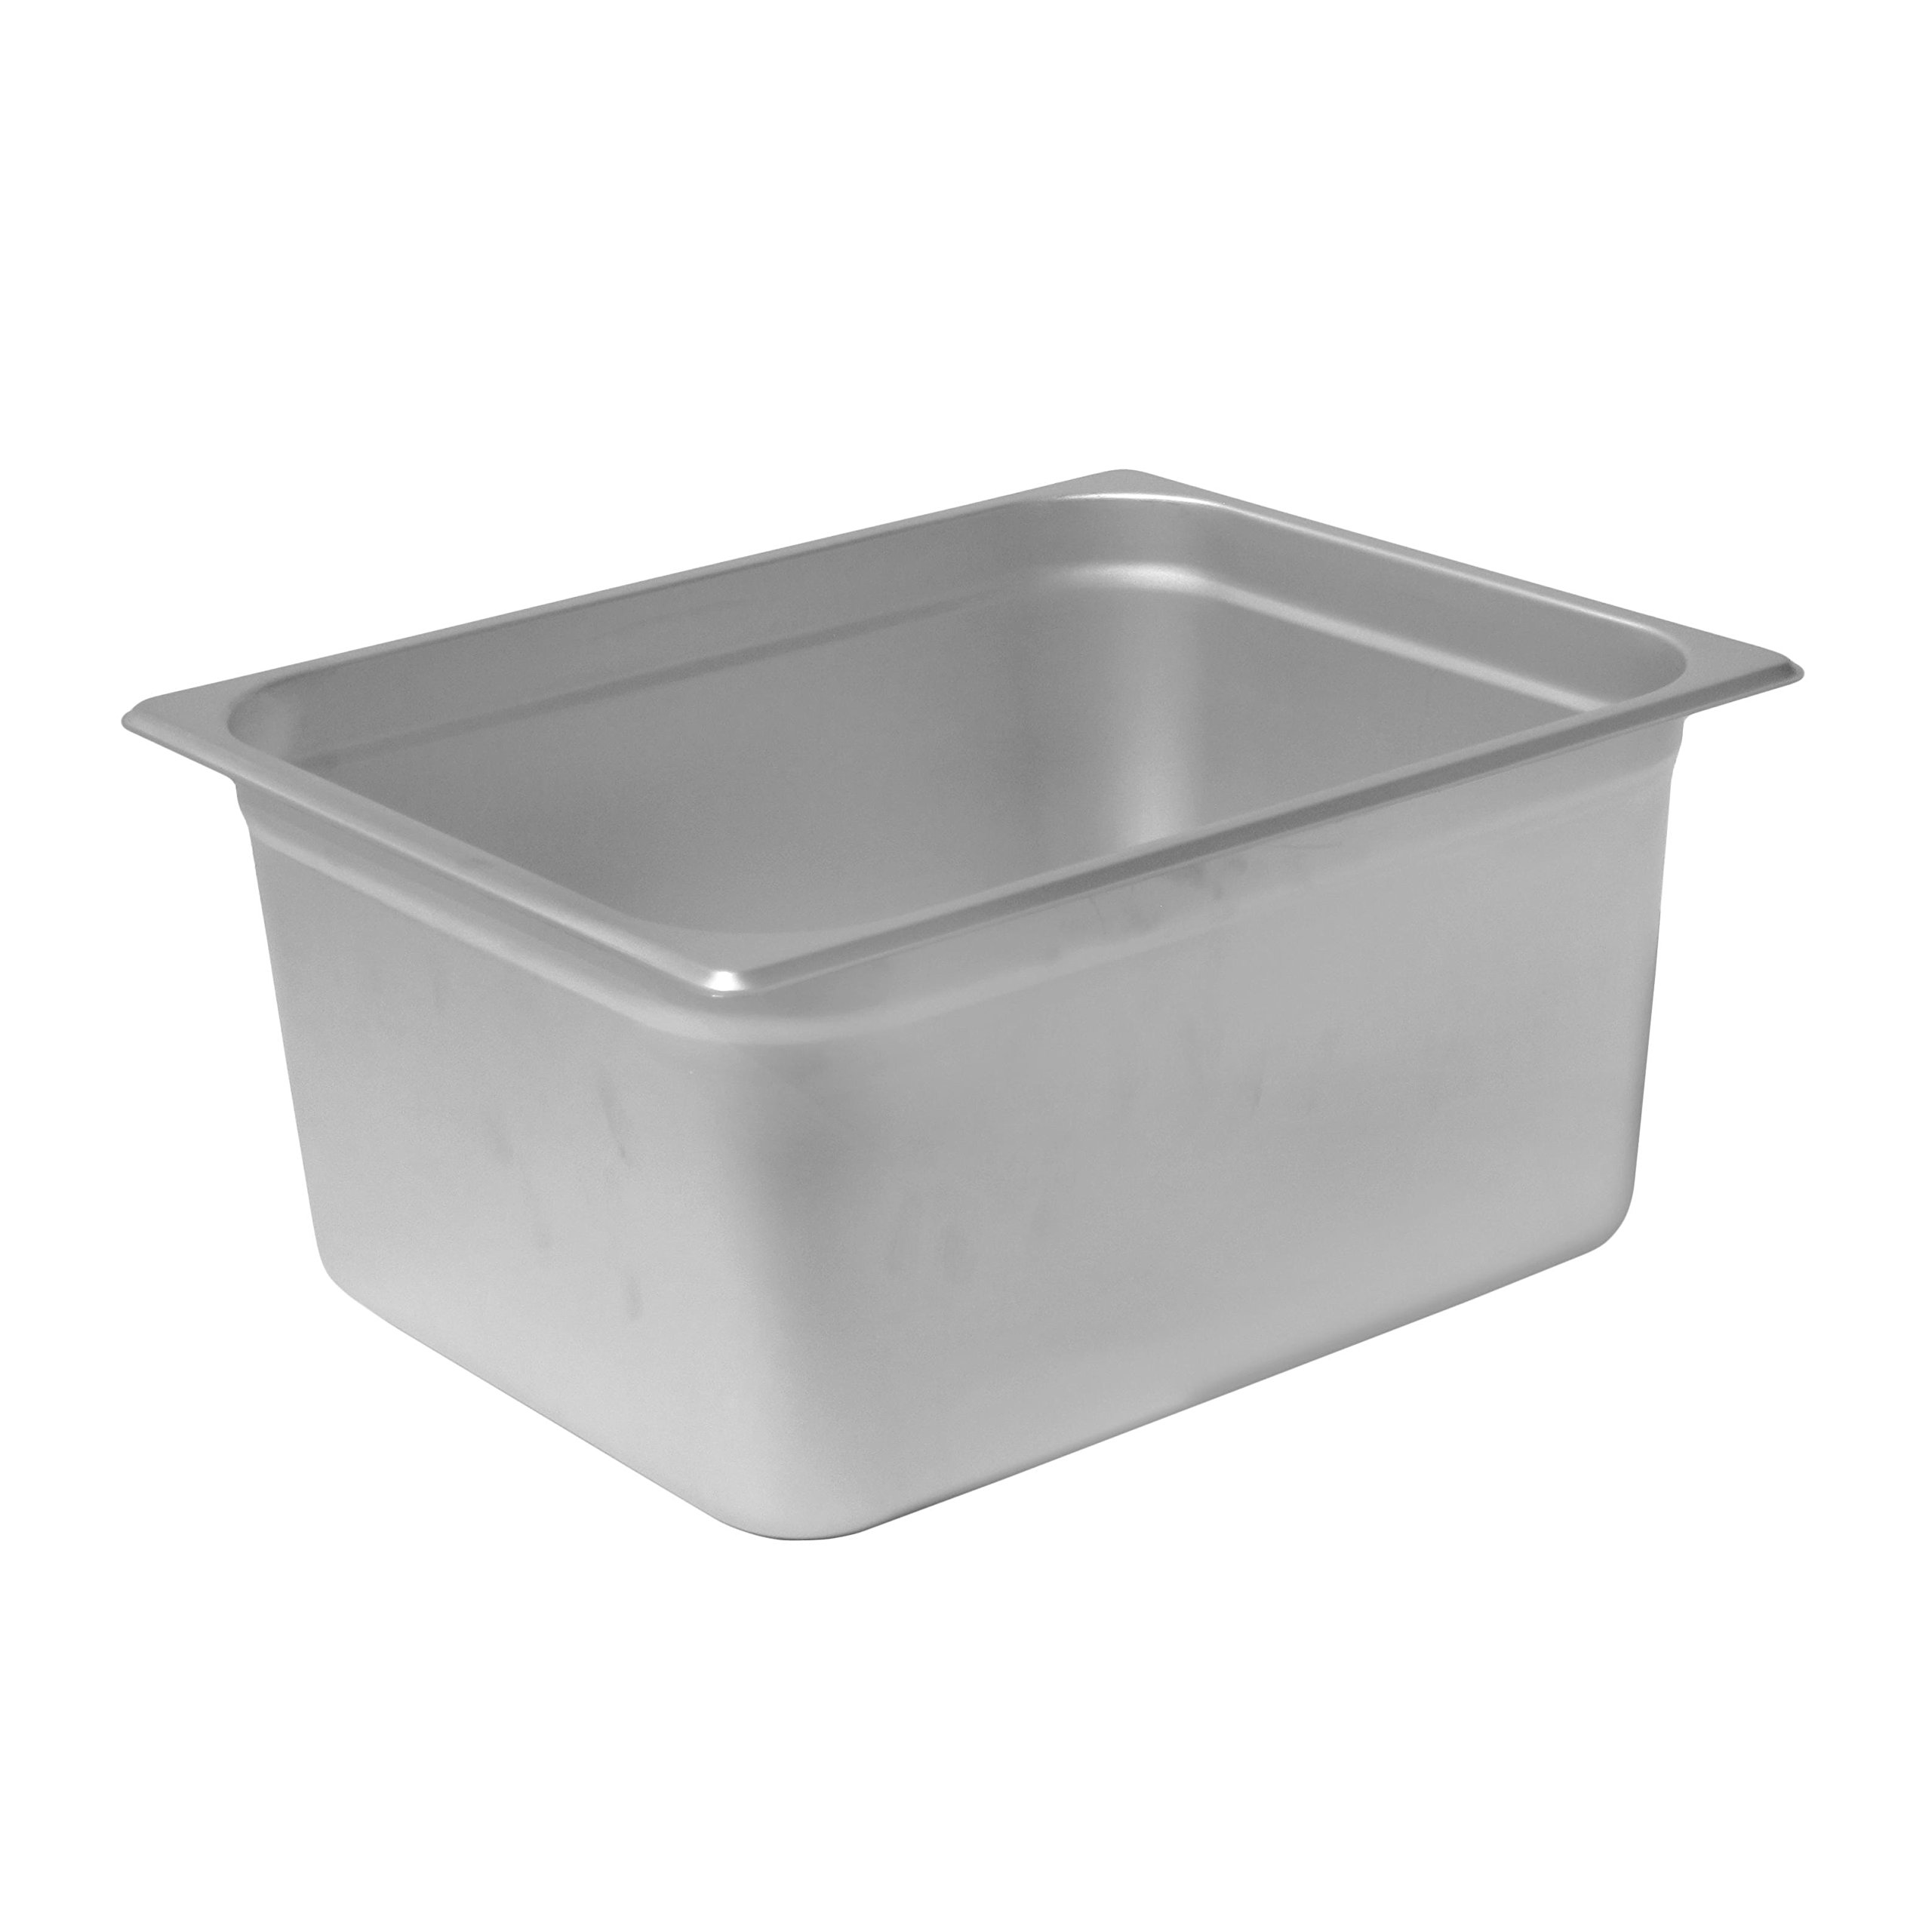 Chef's Supreme - 6'' Half Size Stainless Steam Table Pan by Chef's Supreme